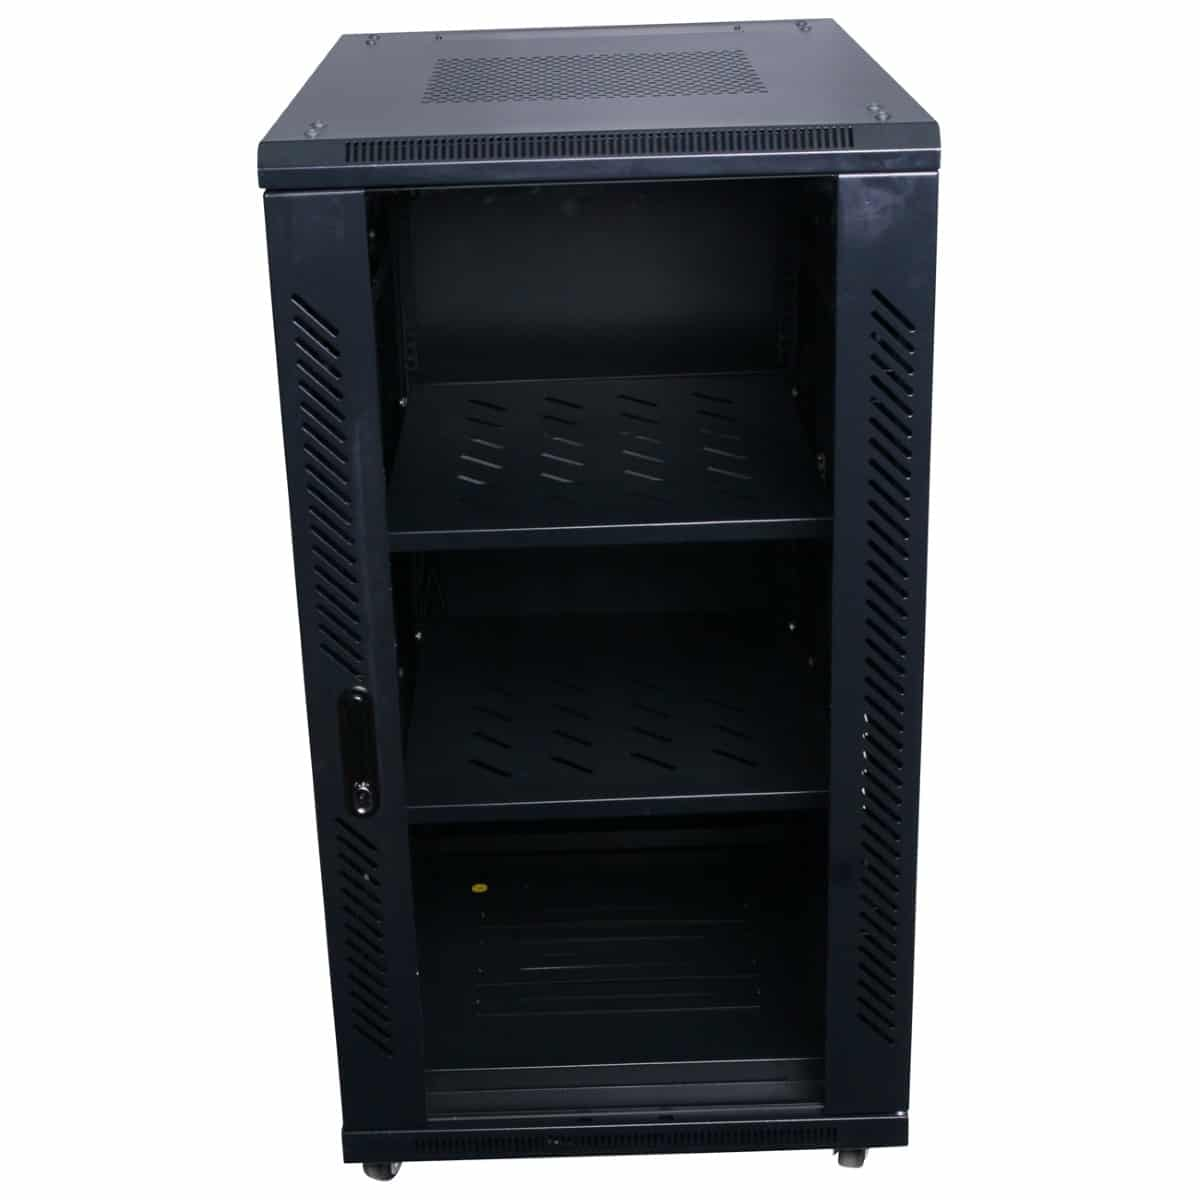 22RU 600mm Deep X 600mm Wide Rack Cabinet